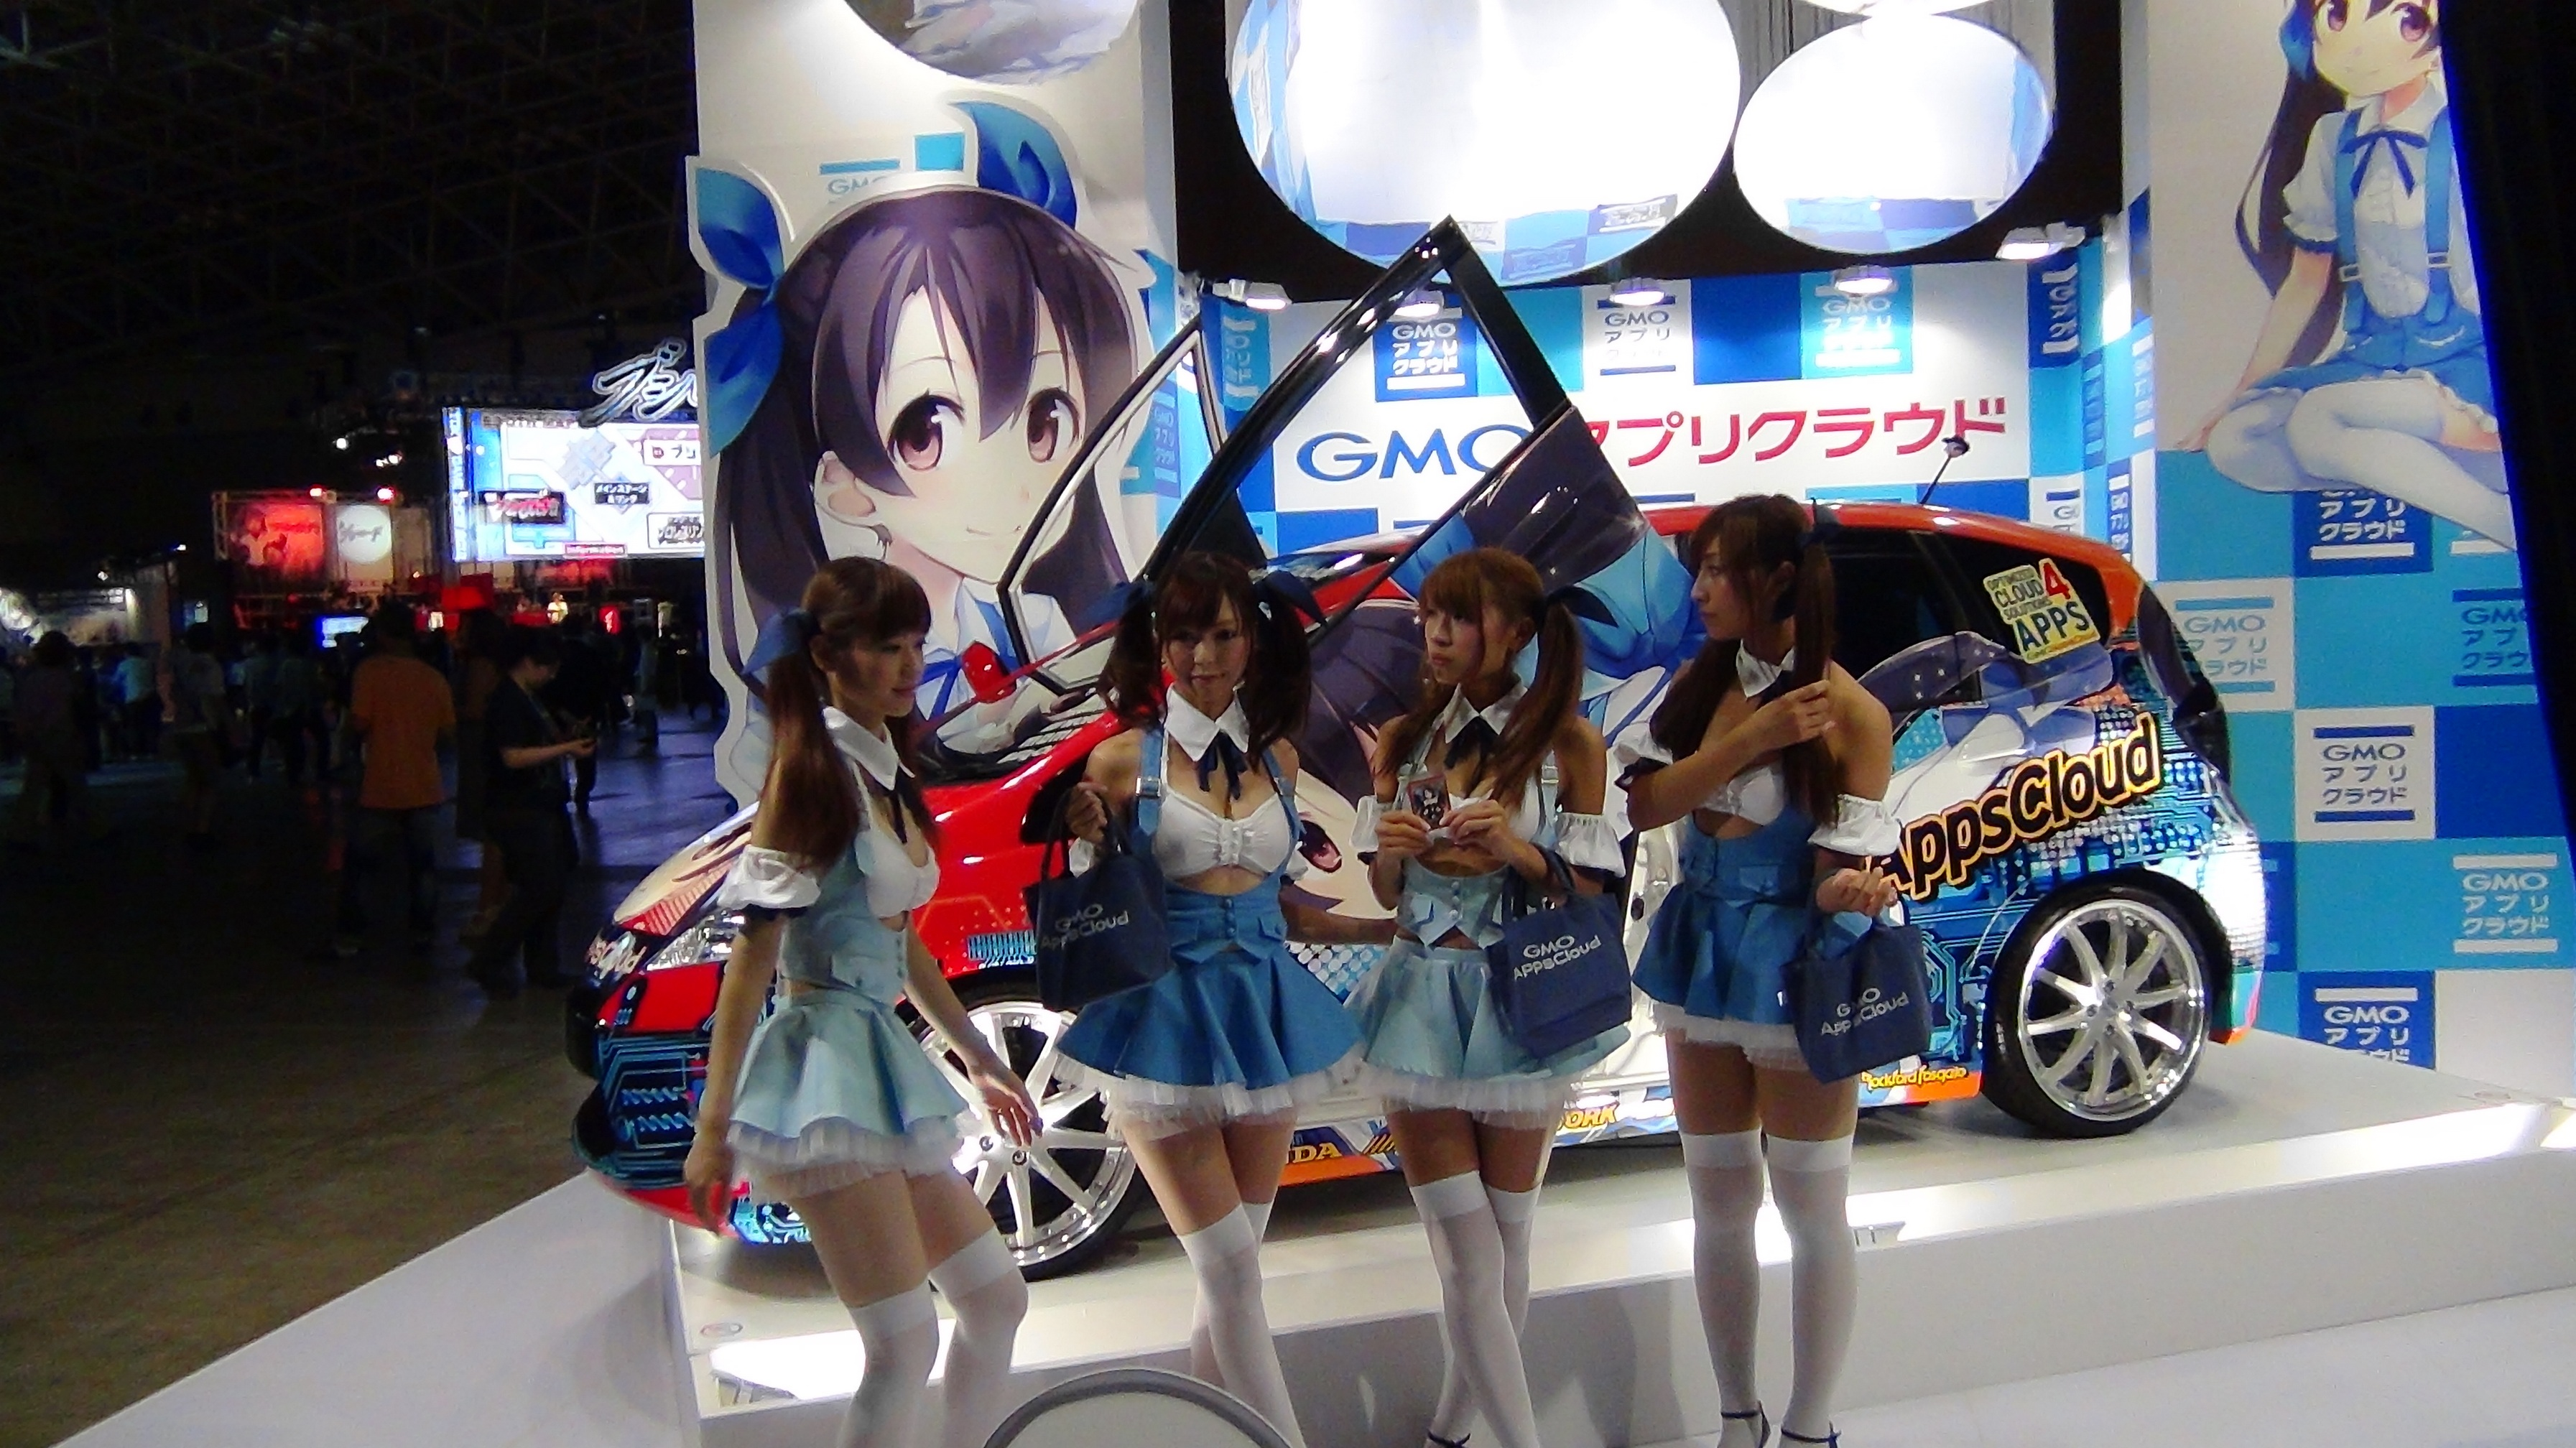 the last tokyo game show